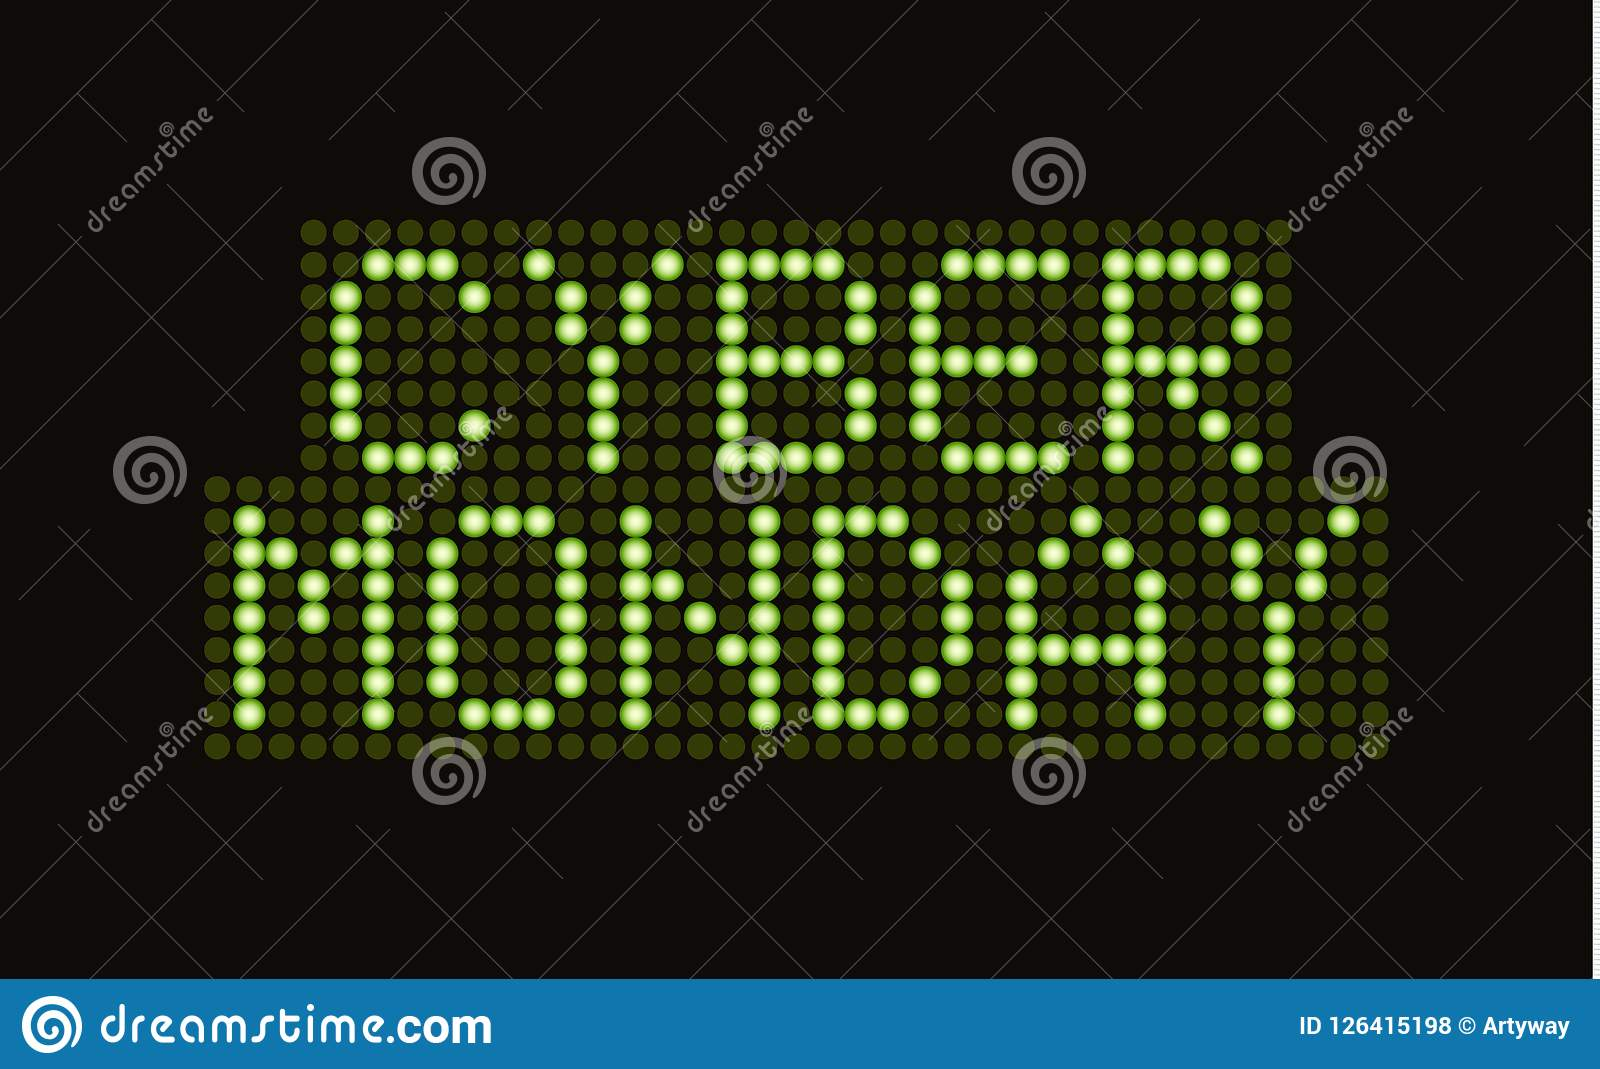 cyber monday sale scoreboard font vector banner discount electronic